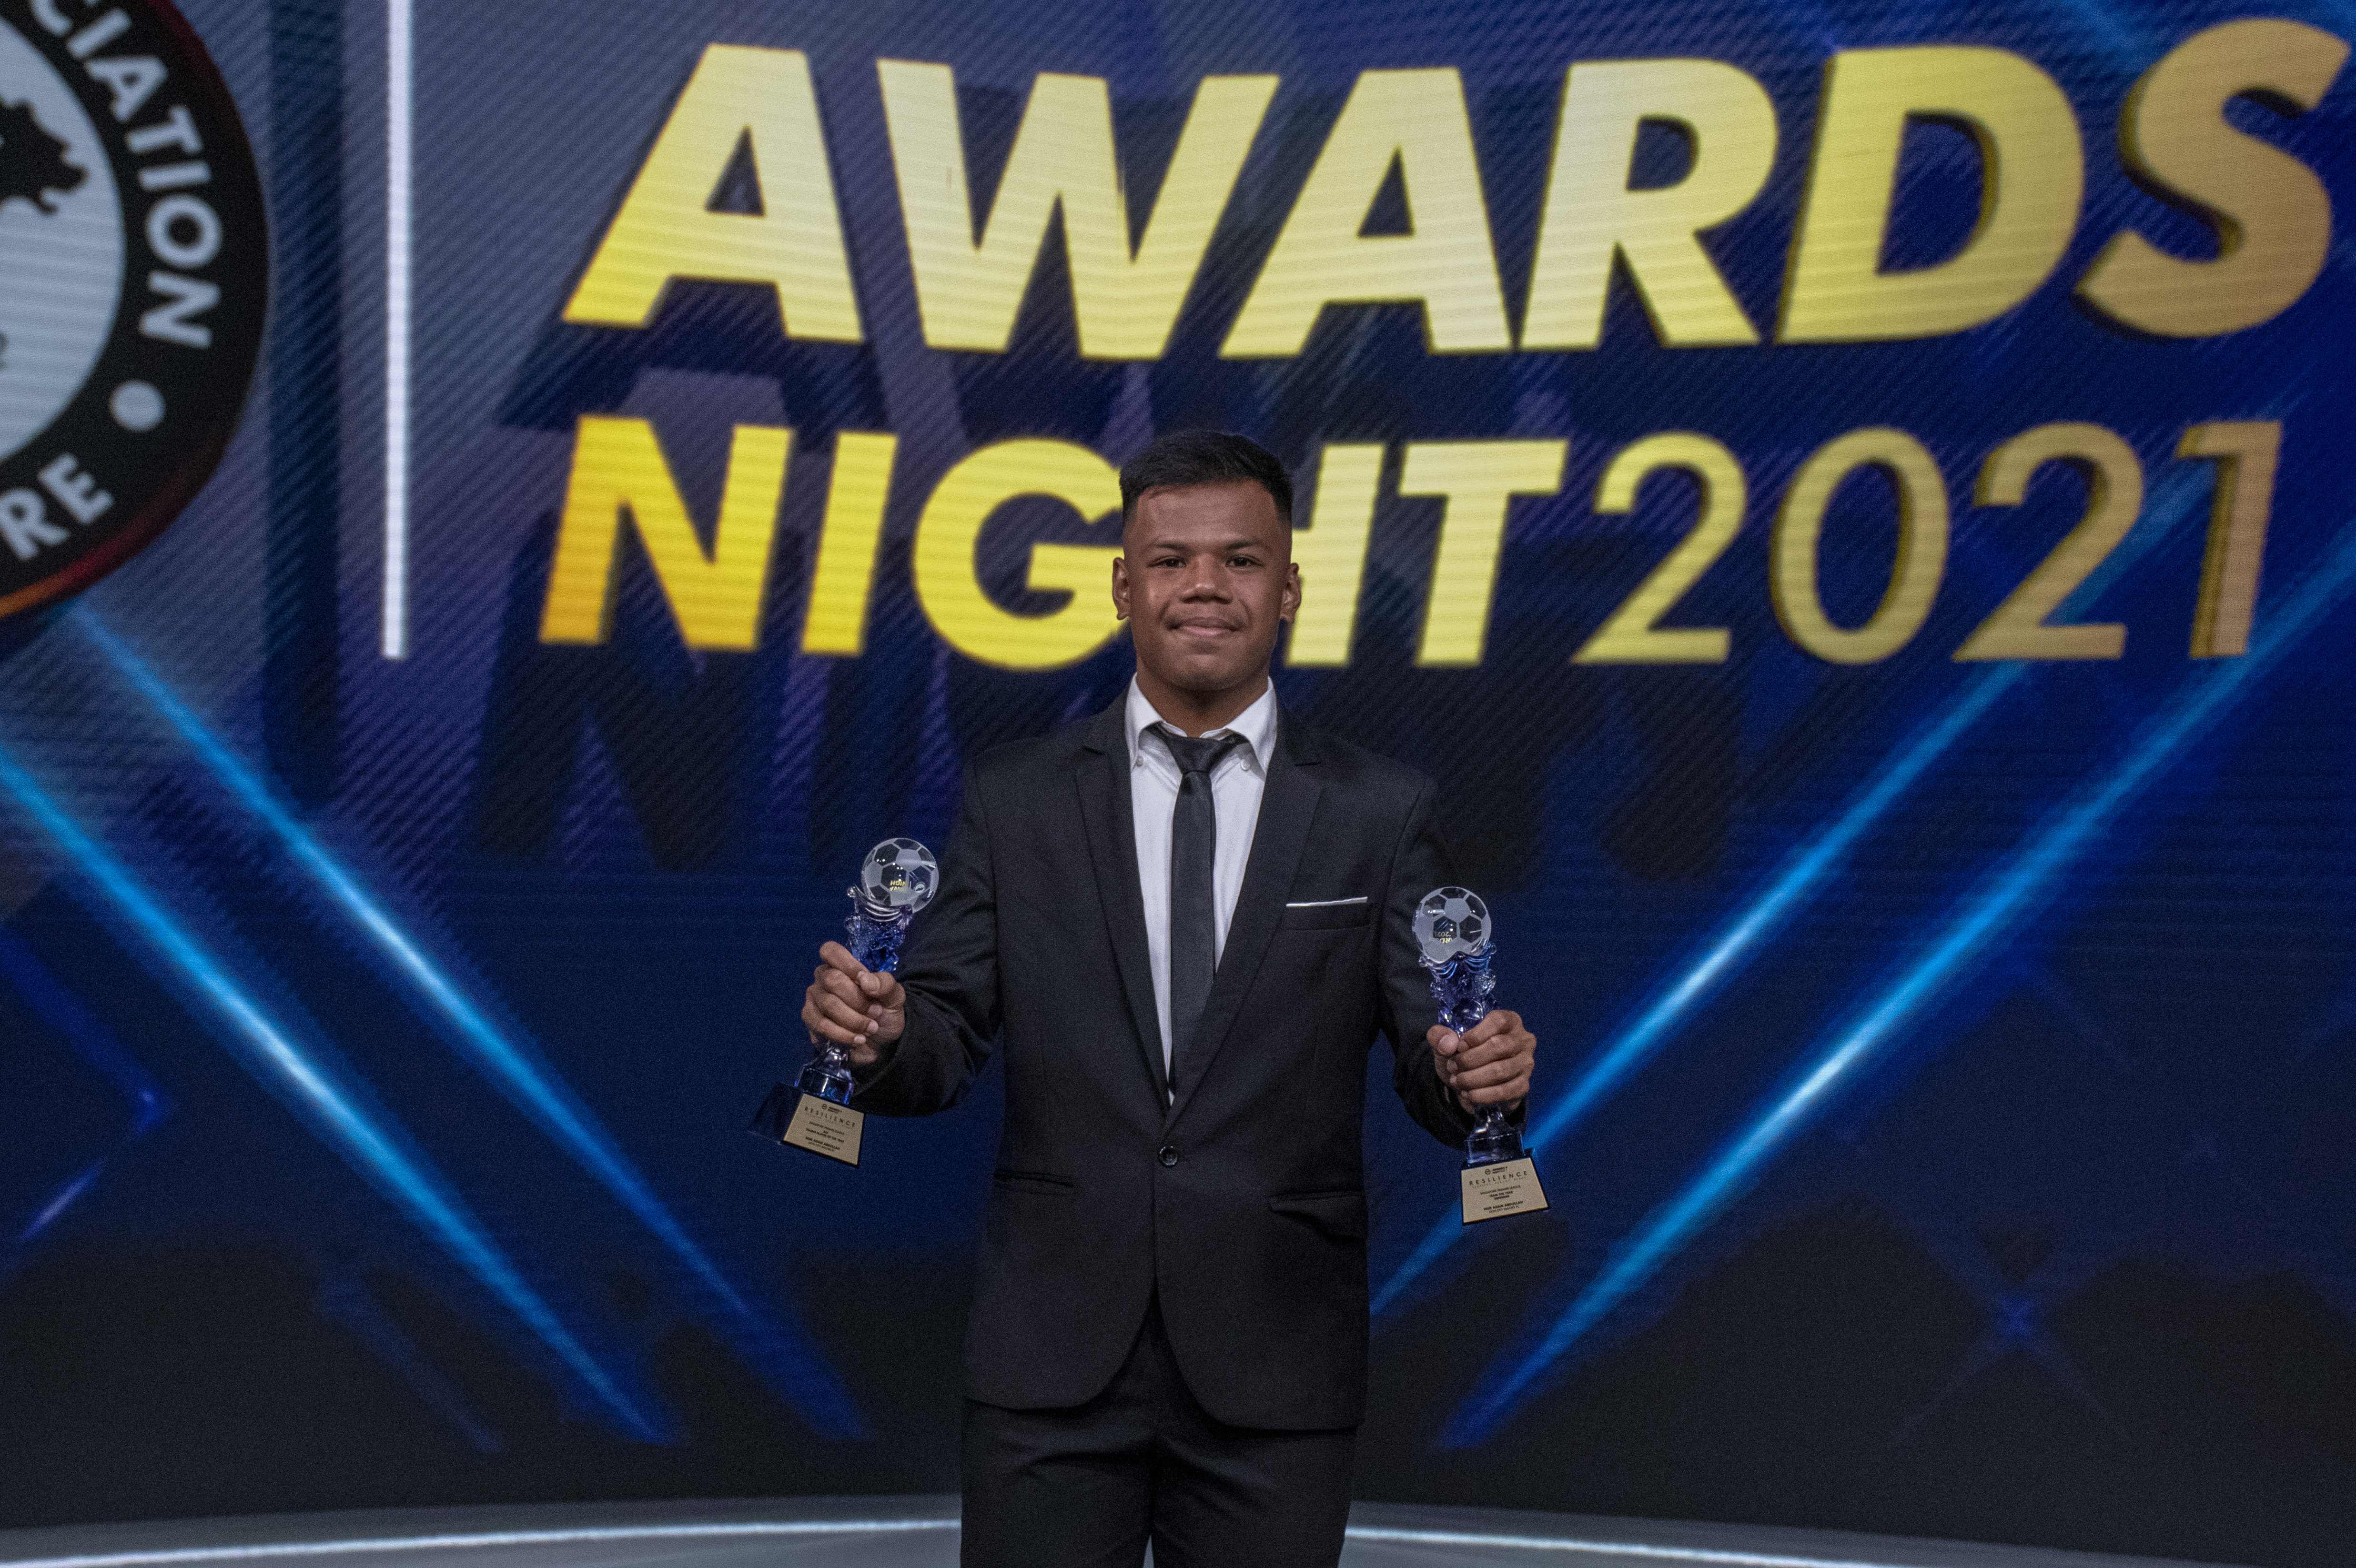 2021 AIA Young Player of the Year Nur Adam Abdullah